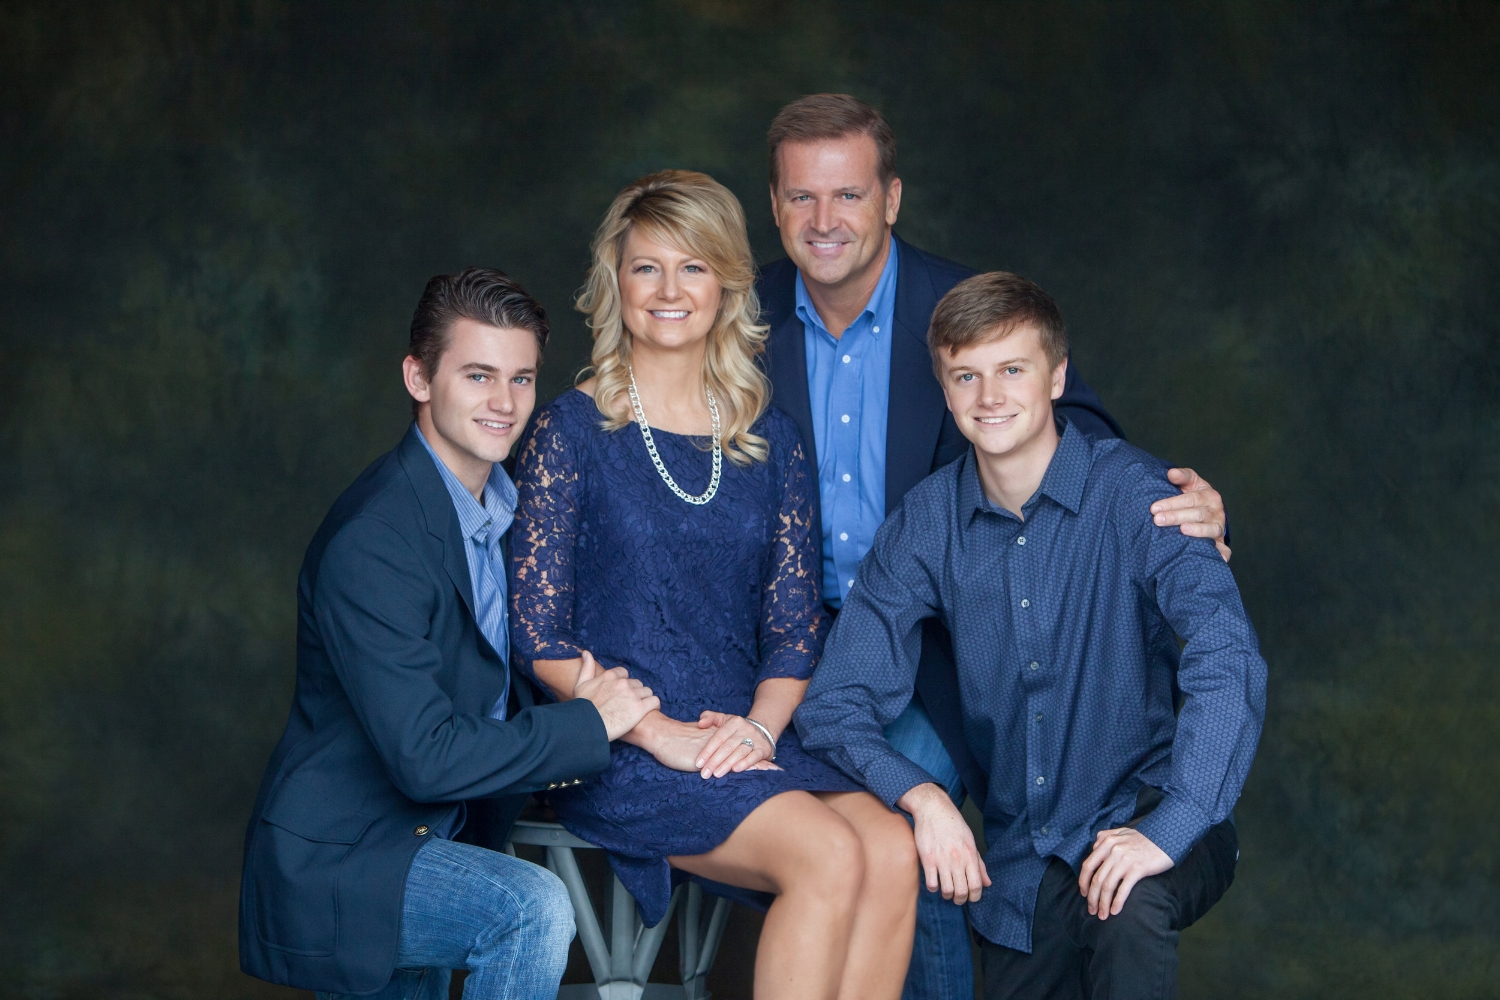 Family Portrait Photography in the studio